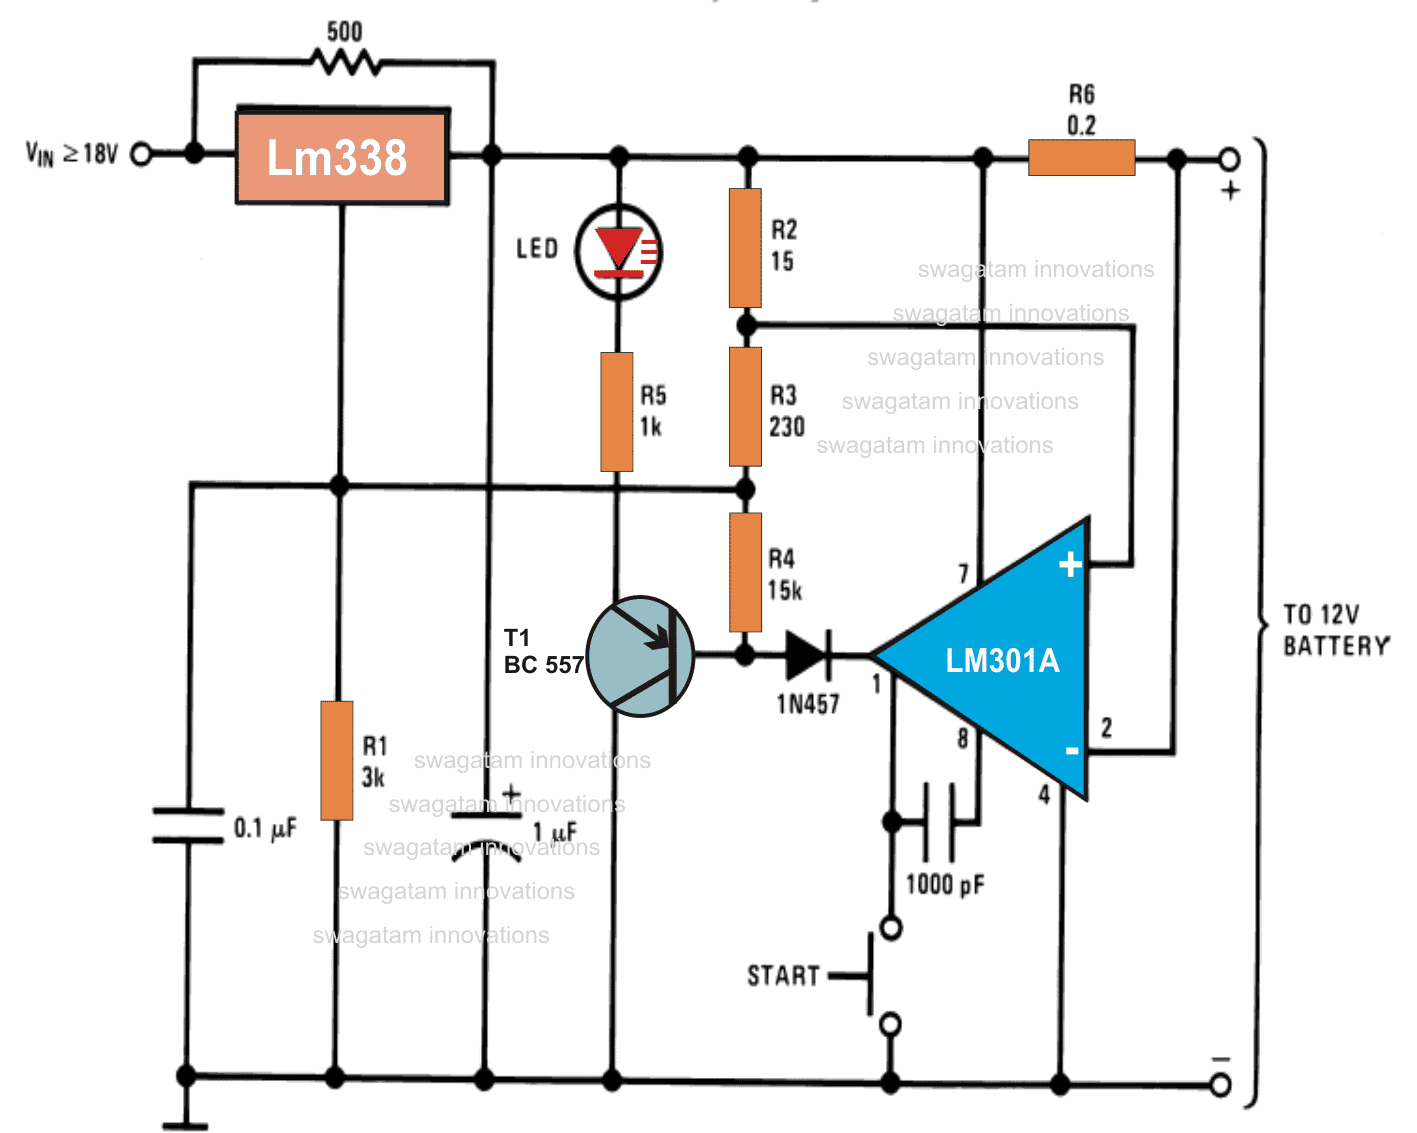 hight resolution of 12v battery charger circuits using lm317 lm338 l200 transistors circuit diagram 3 phase battery charger